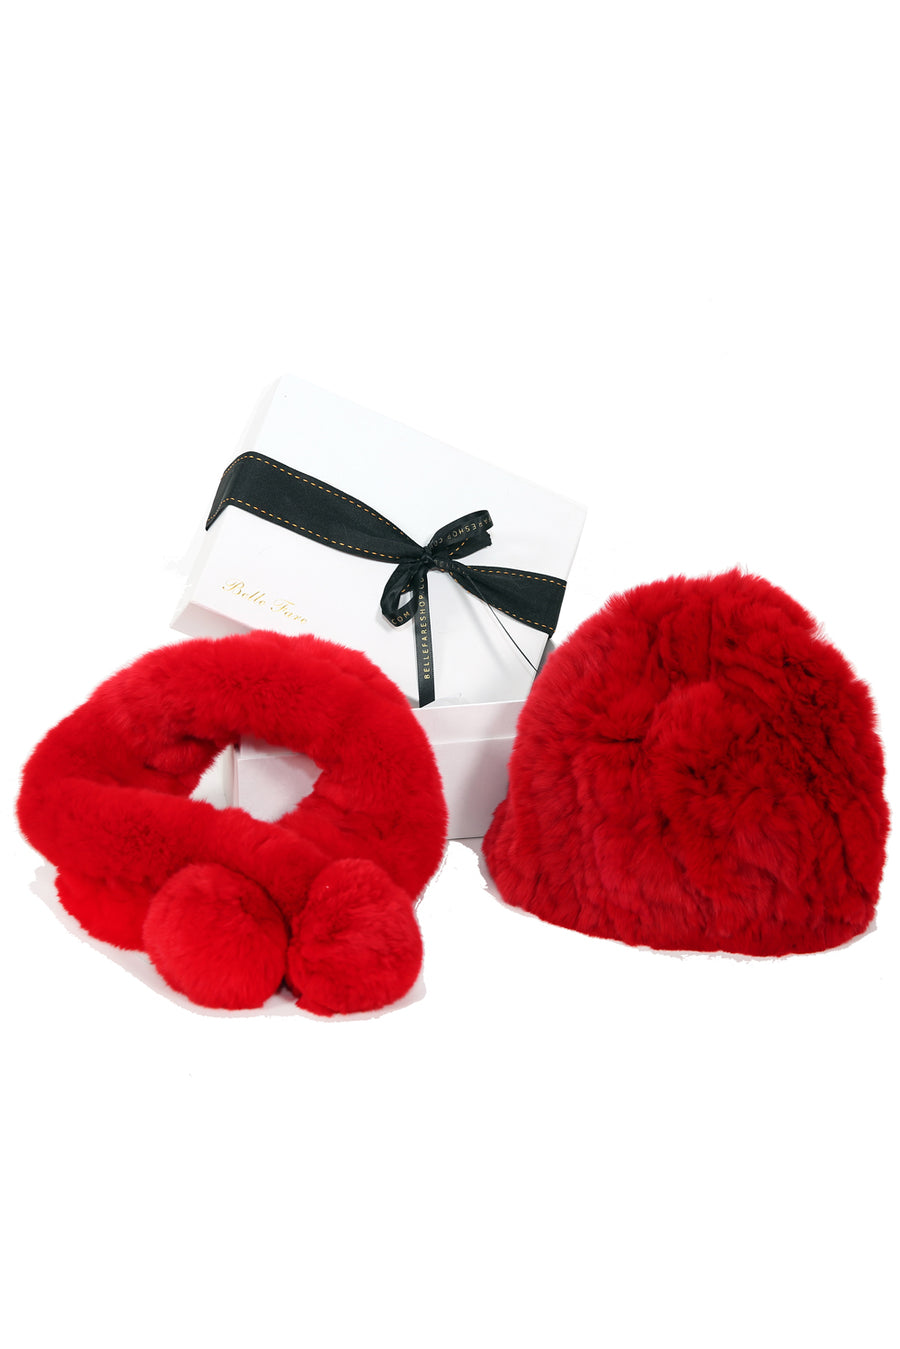 [Special] Rex Scarf and Beanie Hat - Red